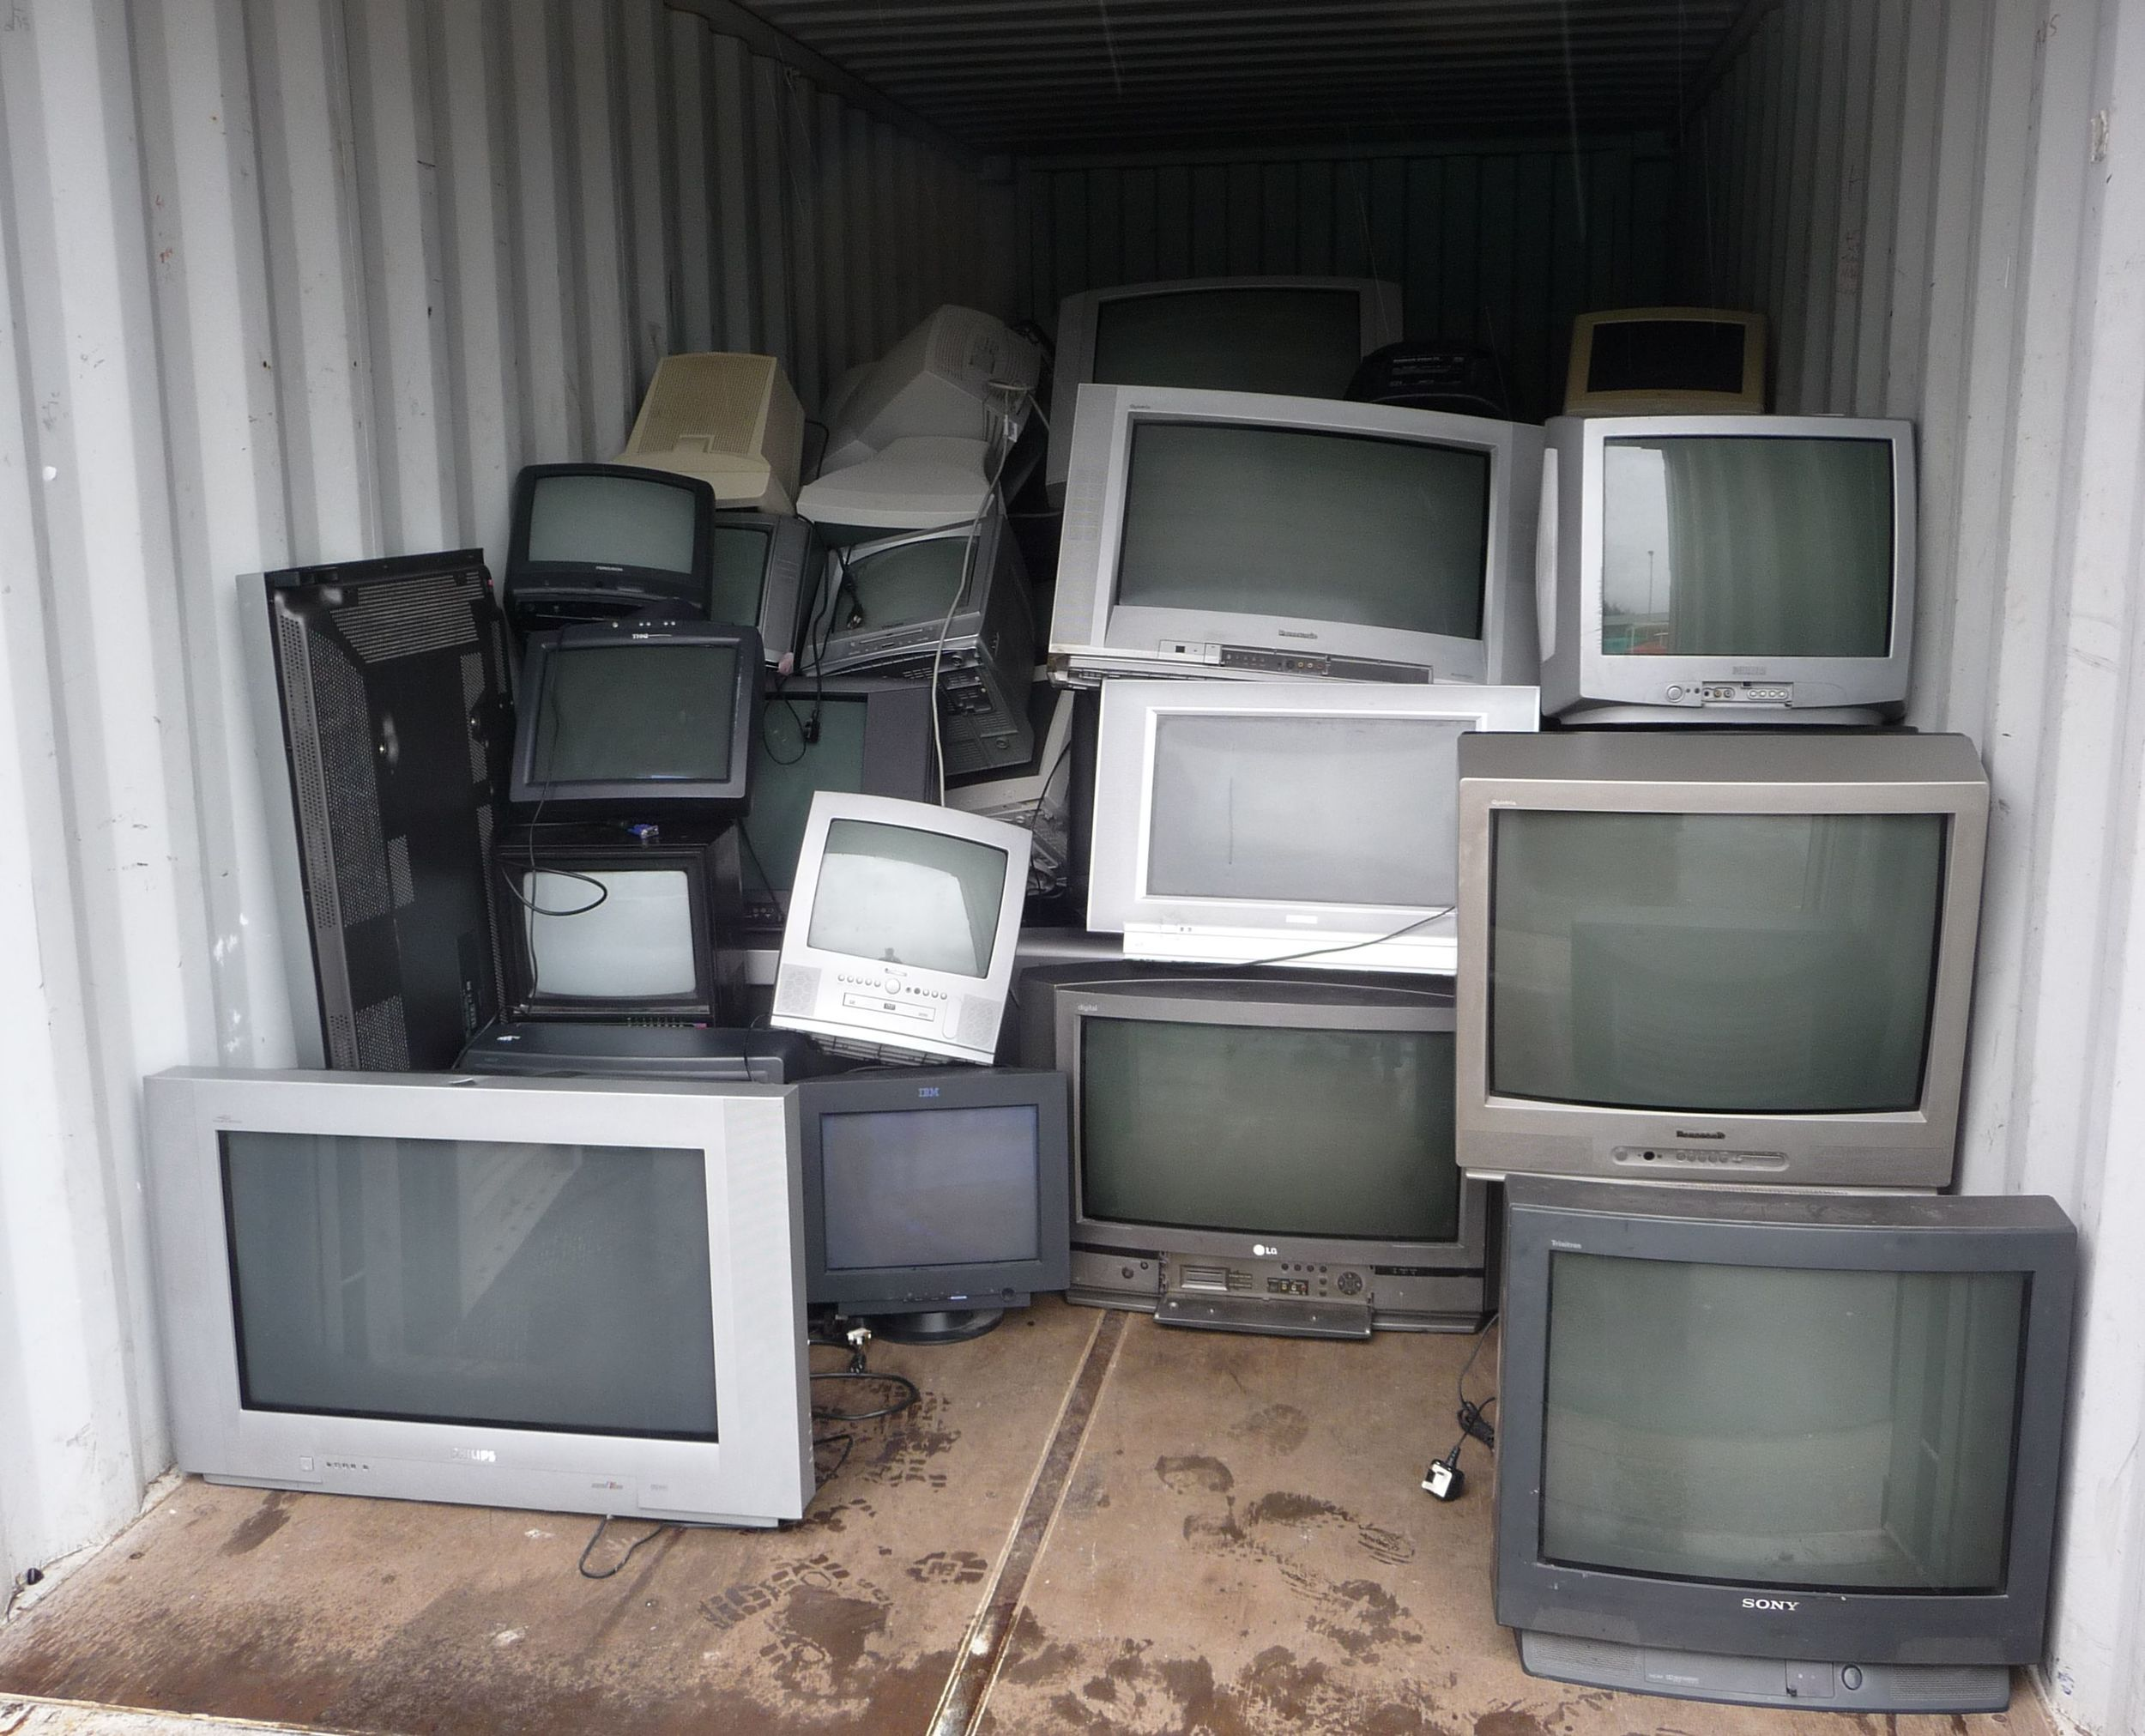 With so many good things on, it is time to grab the extra tvs